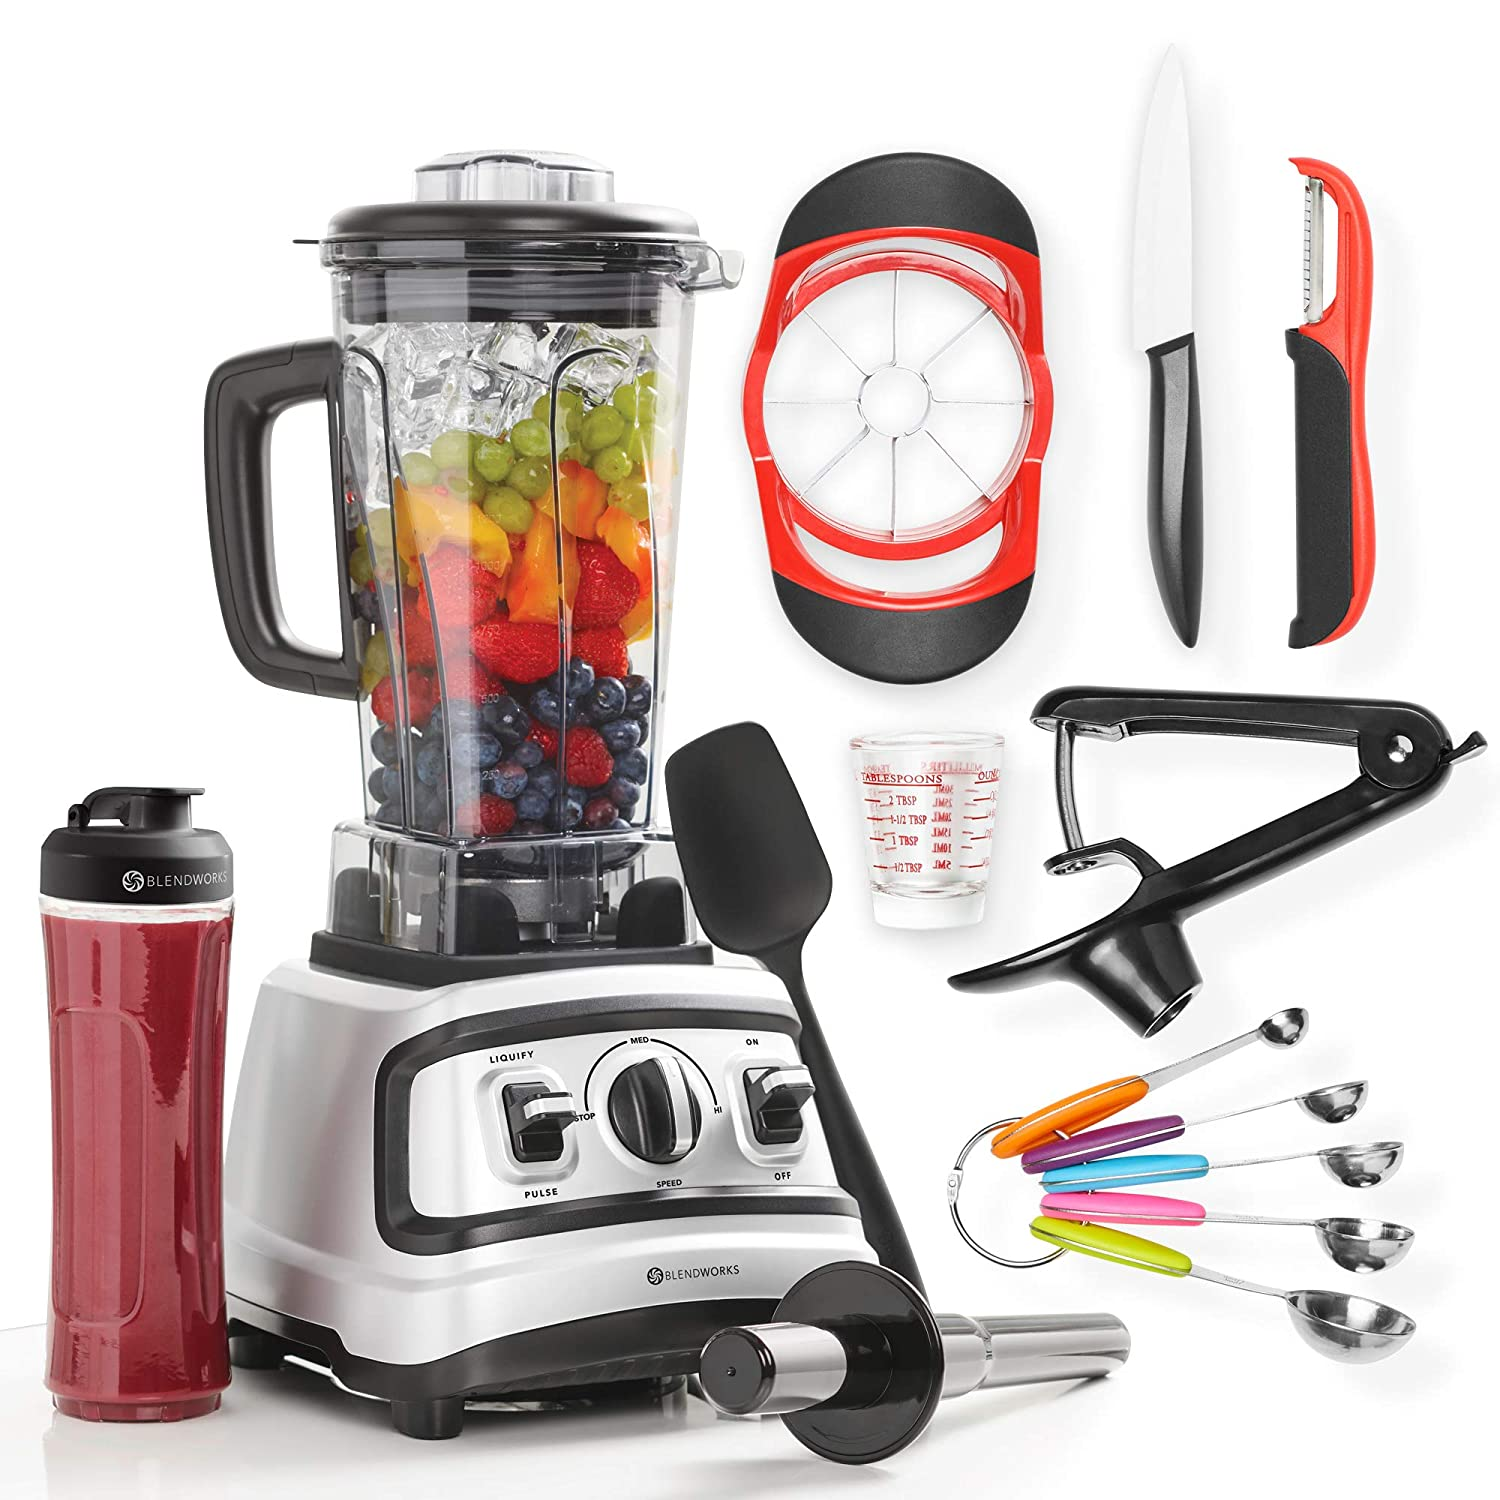 Top 10 Best Blender for Smoothies with Ice - Buyer's Guide 5